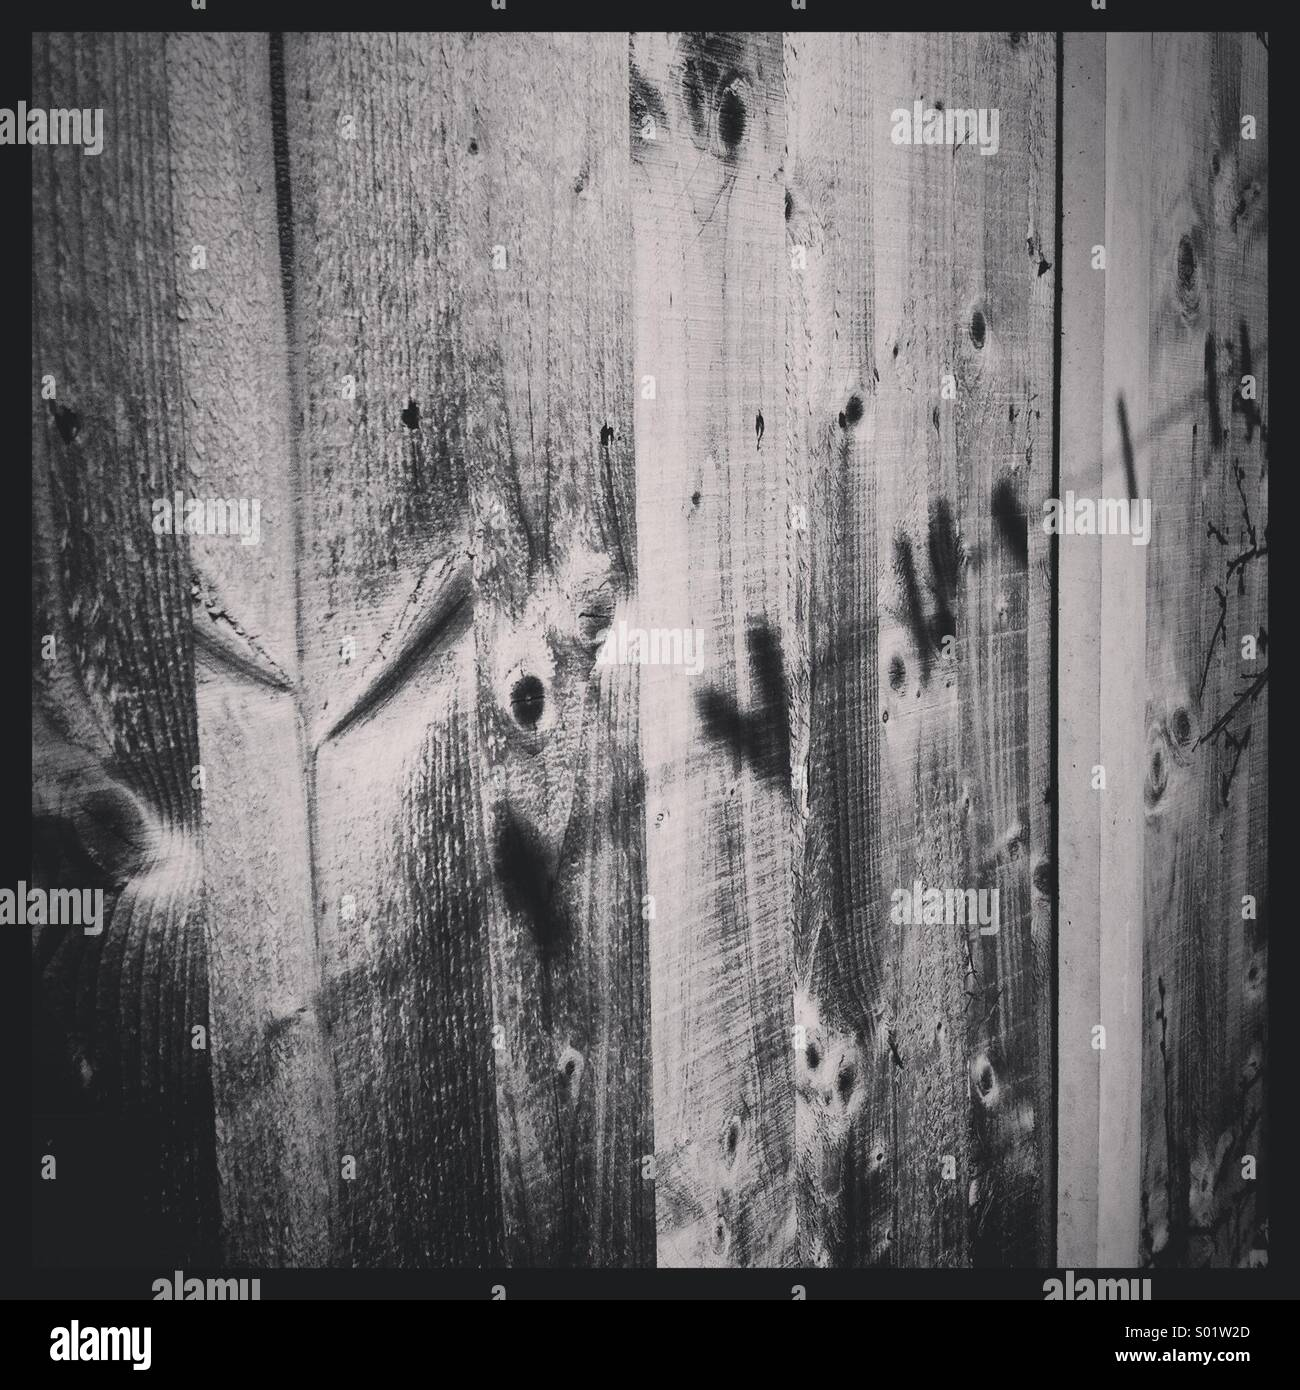 Black and white photograph of the shadow of clothes pegs on a washing line on a wooden fence panel - Stock Image